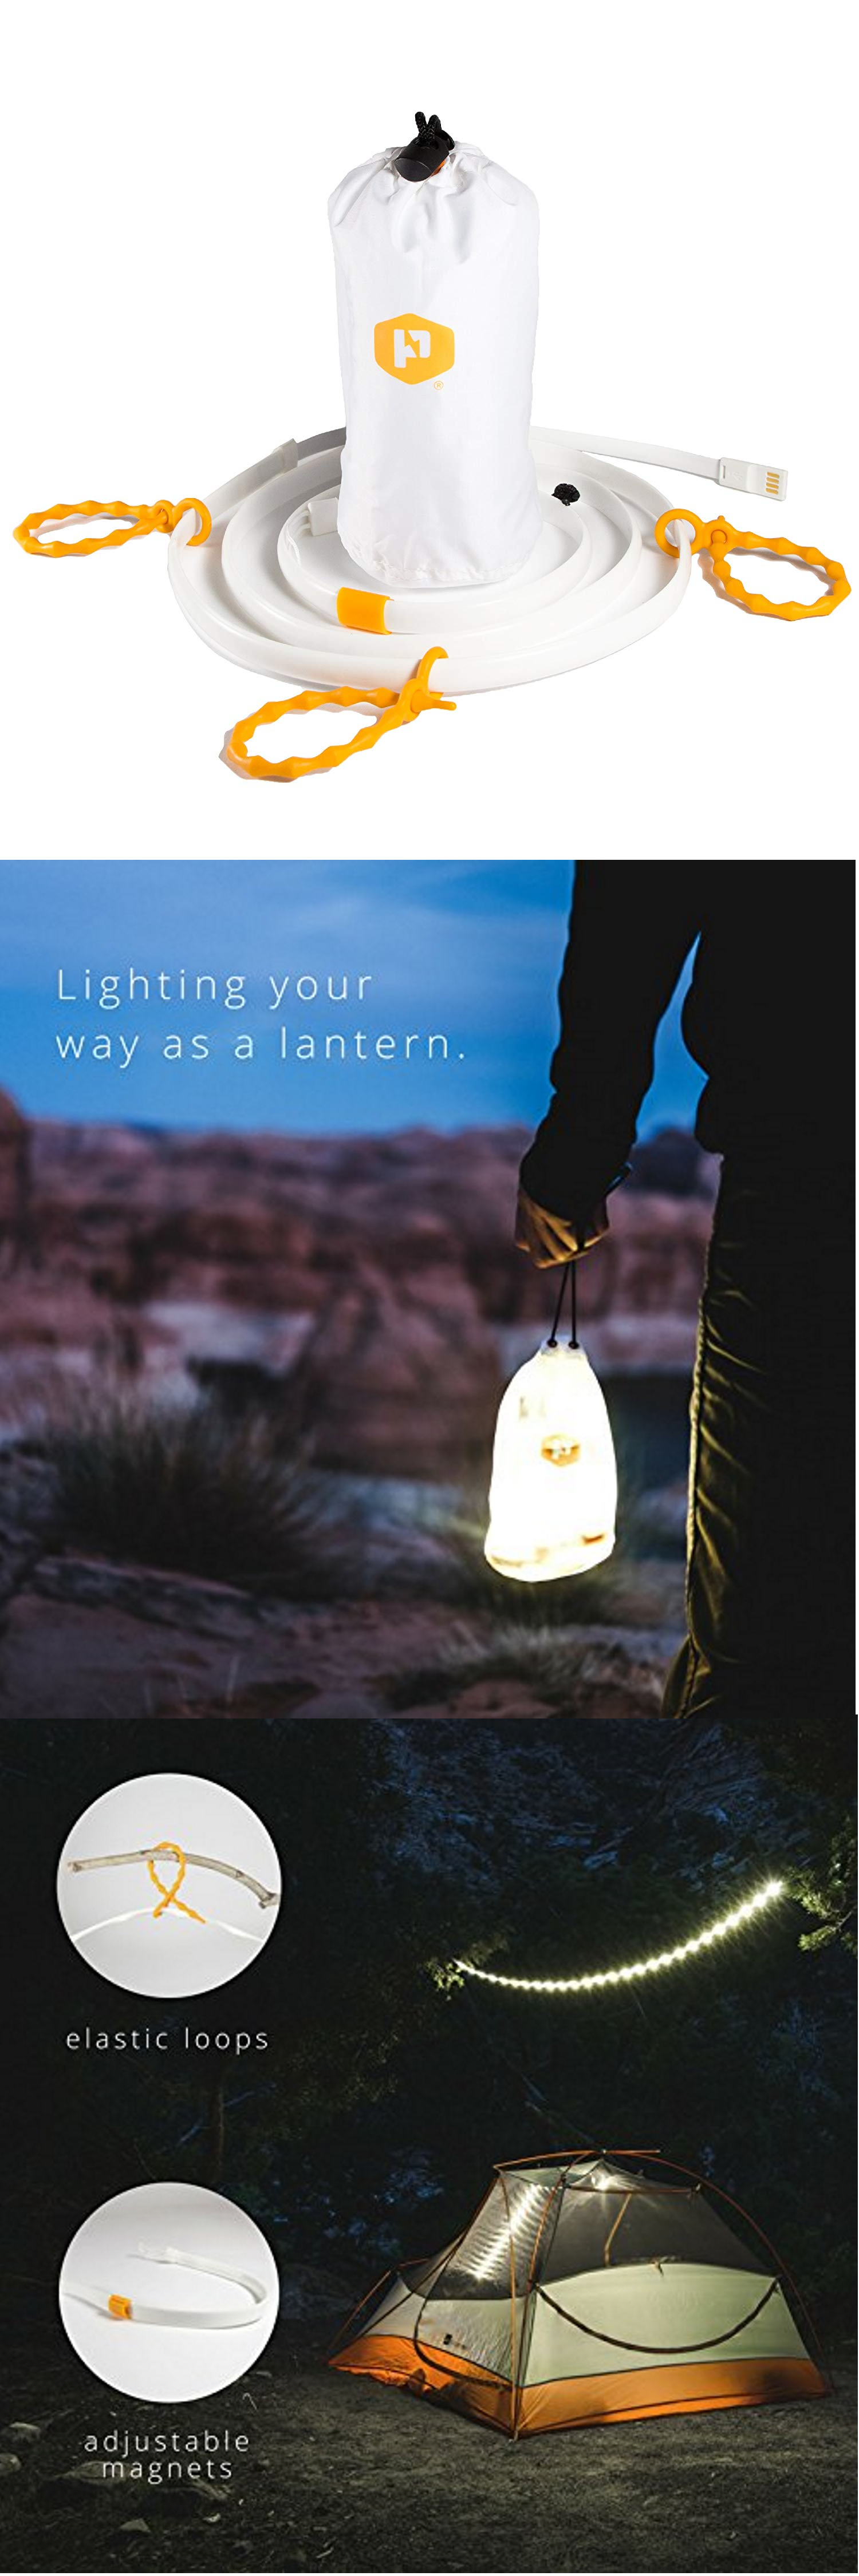 Luminoodle Led Lichtschlauche Camping Lampe Led Laternen Lichterketten